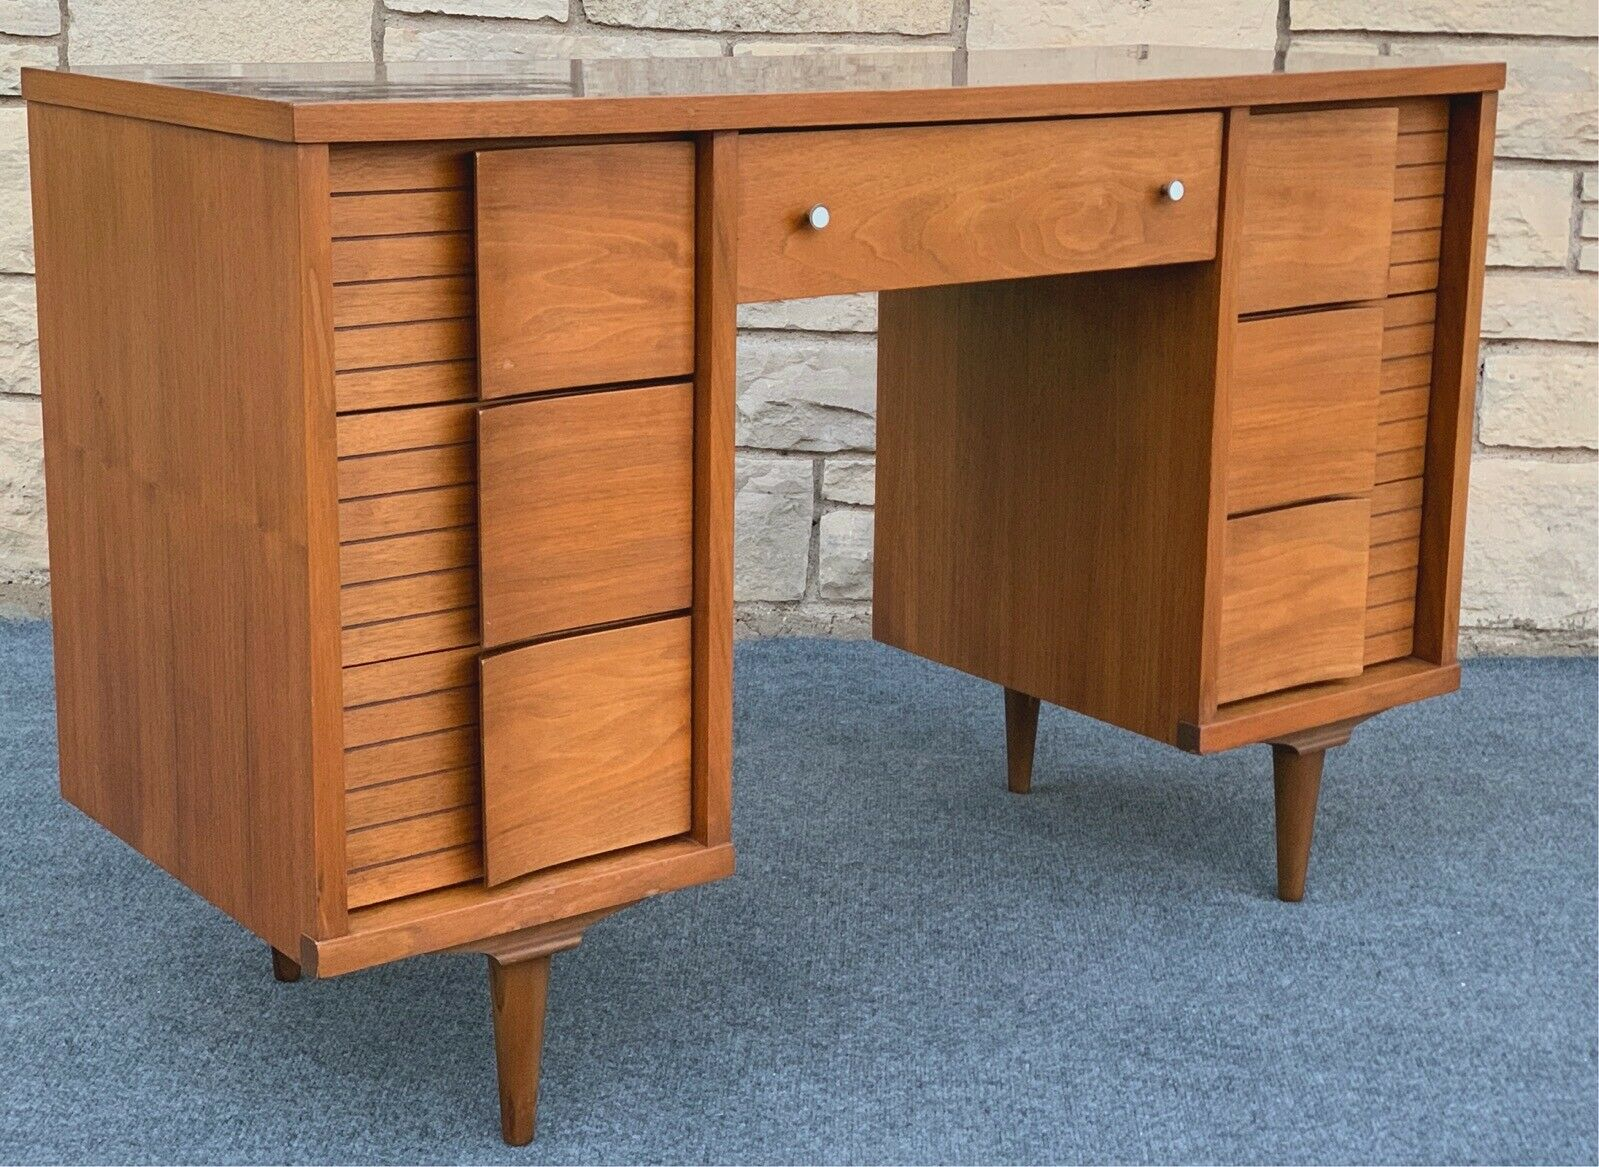 Image of: Mid Century Modern Writing Desk Architecture Console Interiors Walnut Finish For Sale Online Ebay